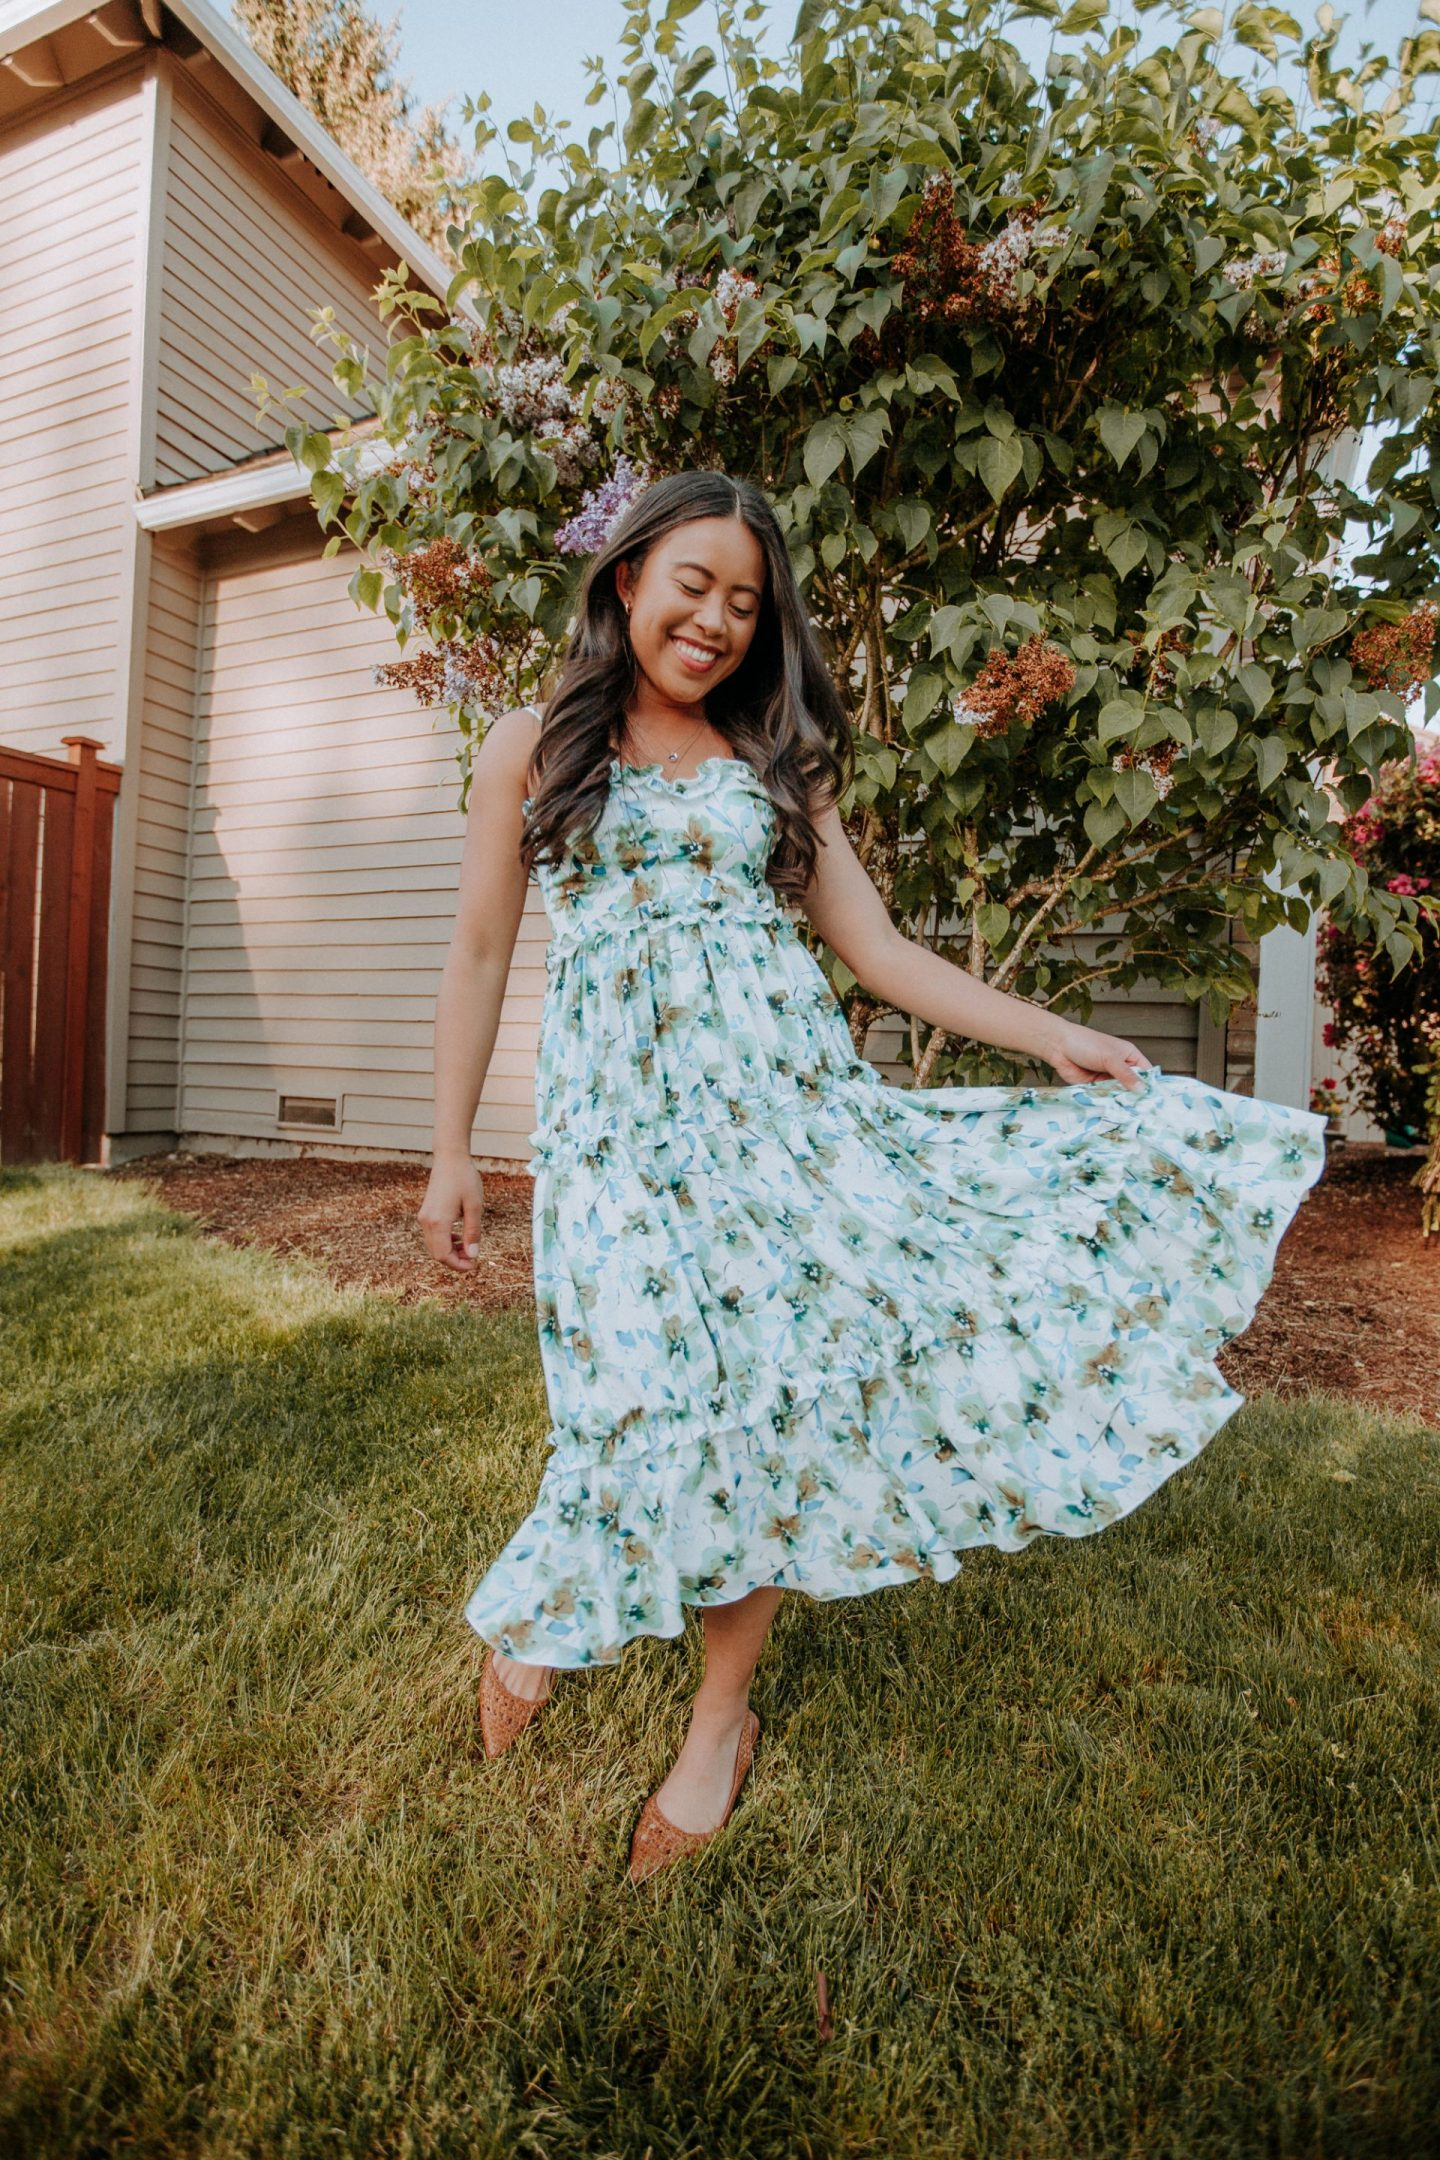 Spring dresses - rent the runway dresses - spring style - summer outfit ideas - summer dresses - copyright @emmasedition